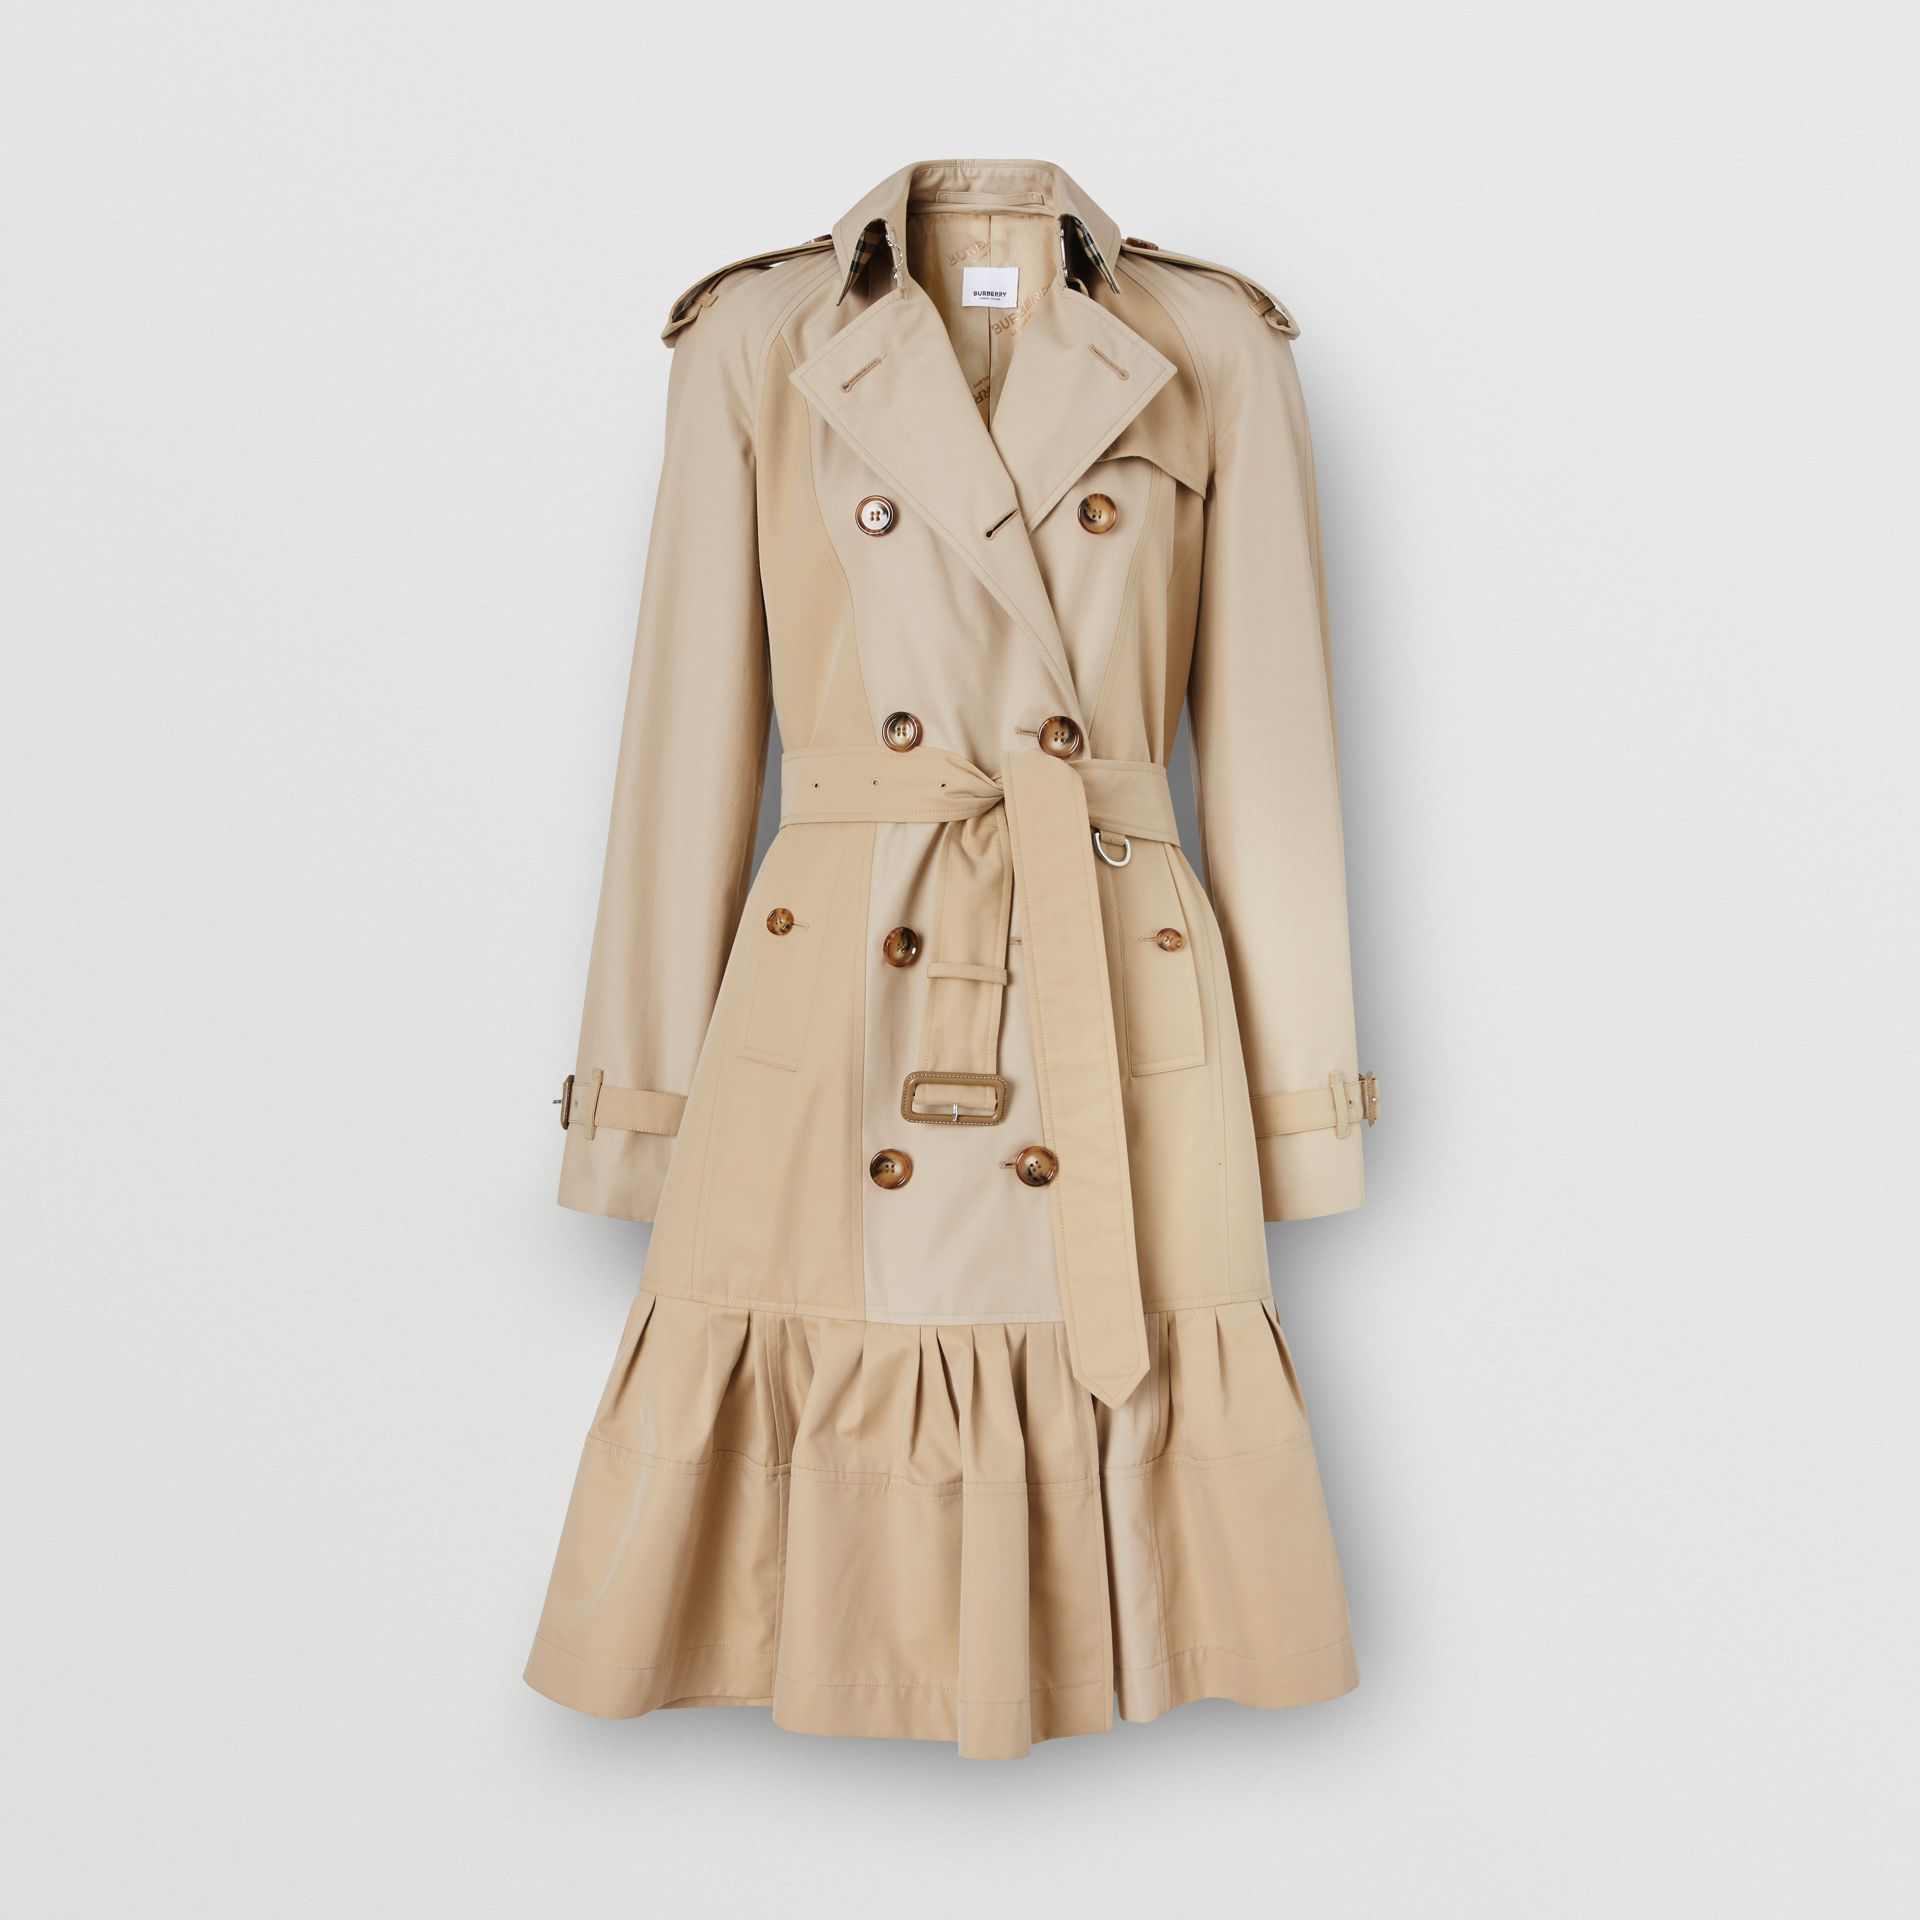 Gathered Detail Cotton Gabardine Trench Coat in Light Sand - Women | Burberry - gallery image 2